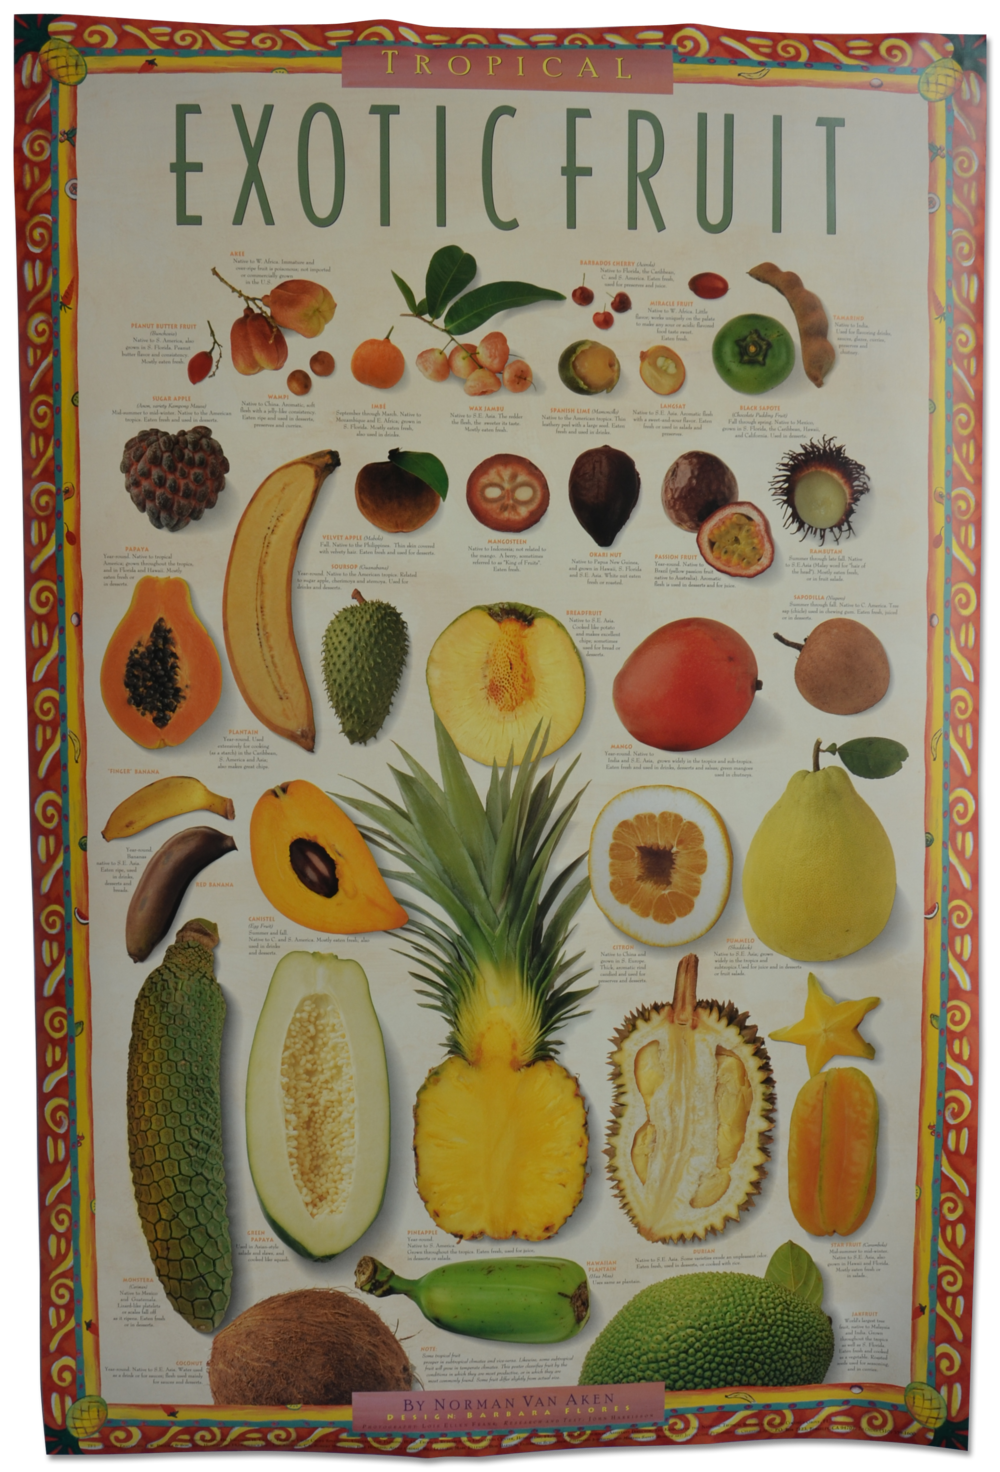 Tropical Exotic Fruits